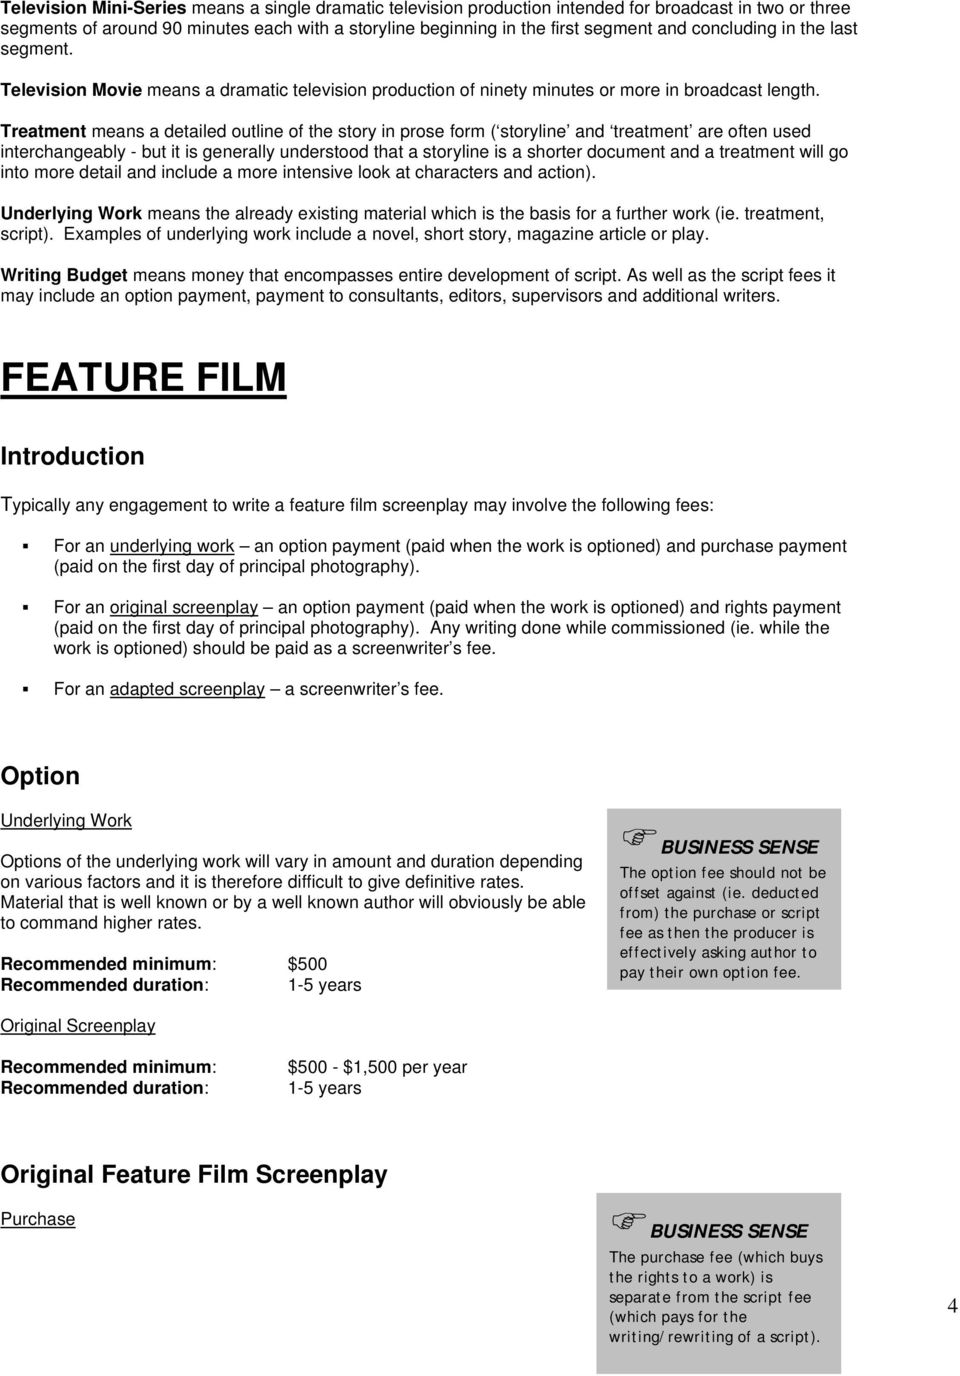 NEW ZEALAND WRITERS GUILD - PDF Free Download